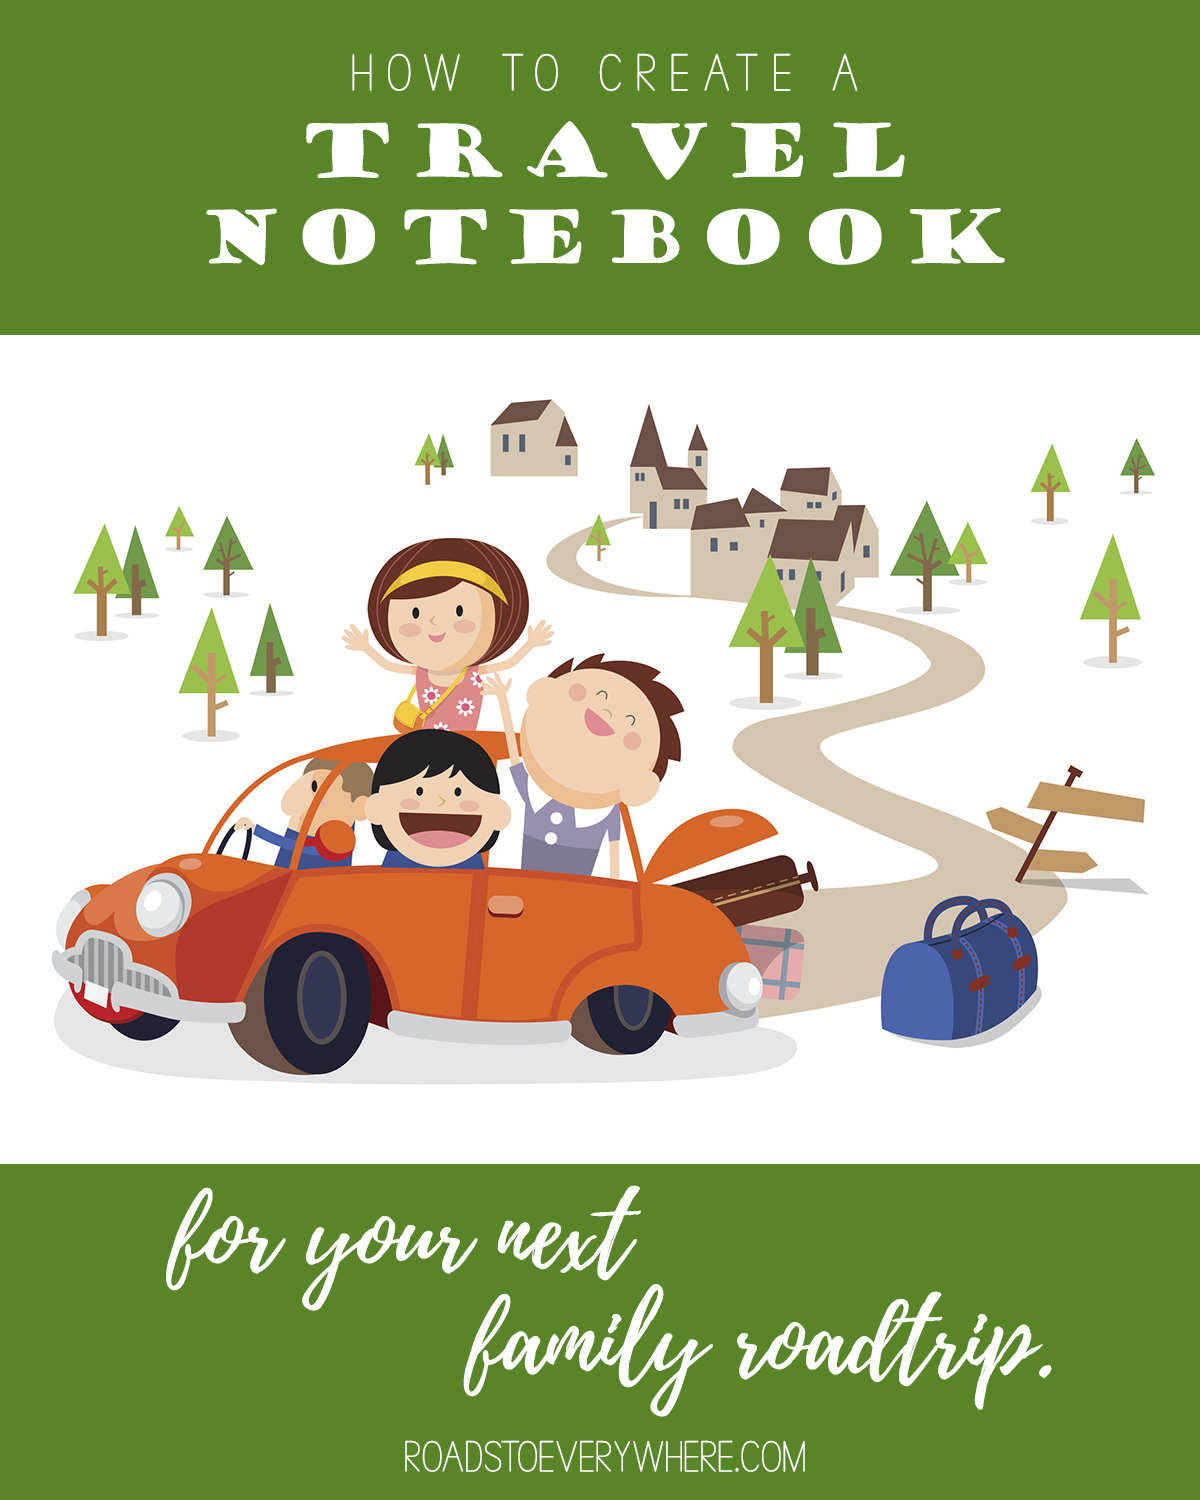 How to create a travel notebook